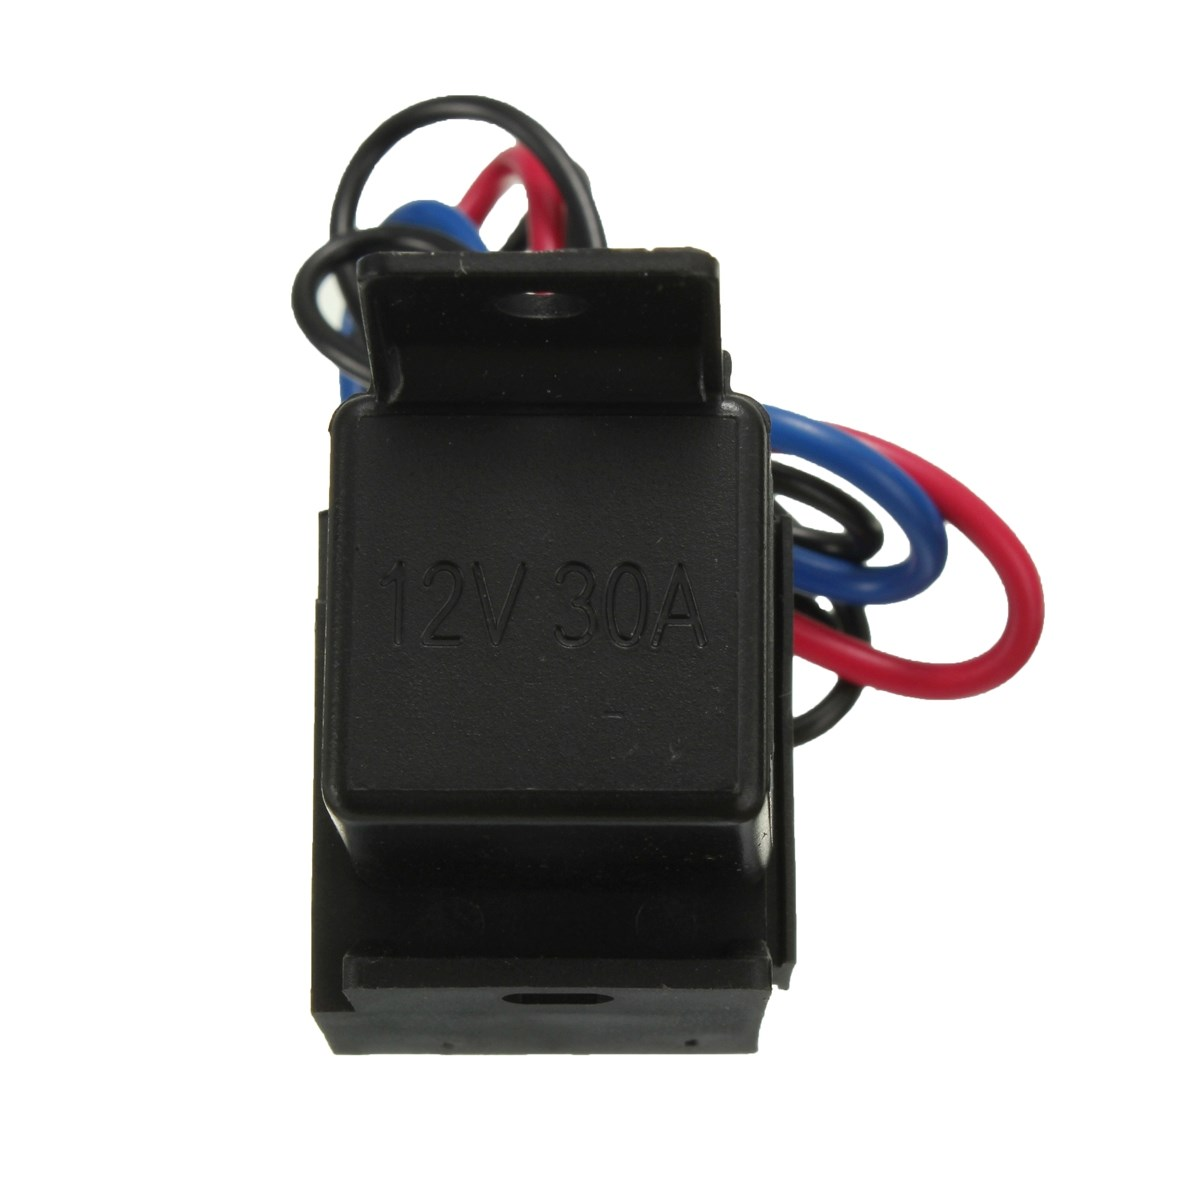 12v Racing Car Ignition Switch Starter Carbon Panel Toggle Switches With Fuse Box Engine Start Push Button Relay In Relays From Automobiles Motorcycles On